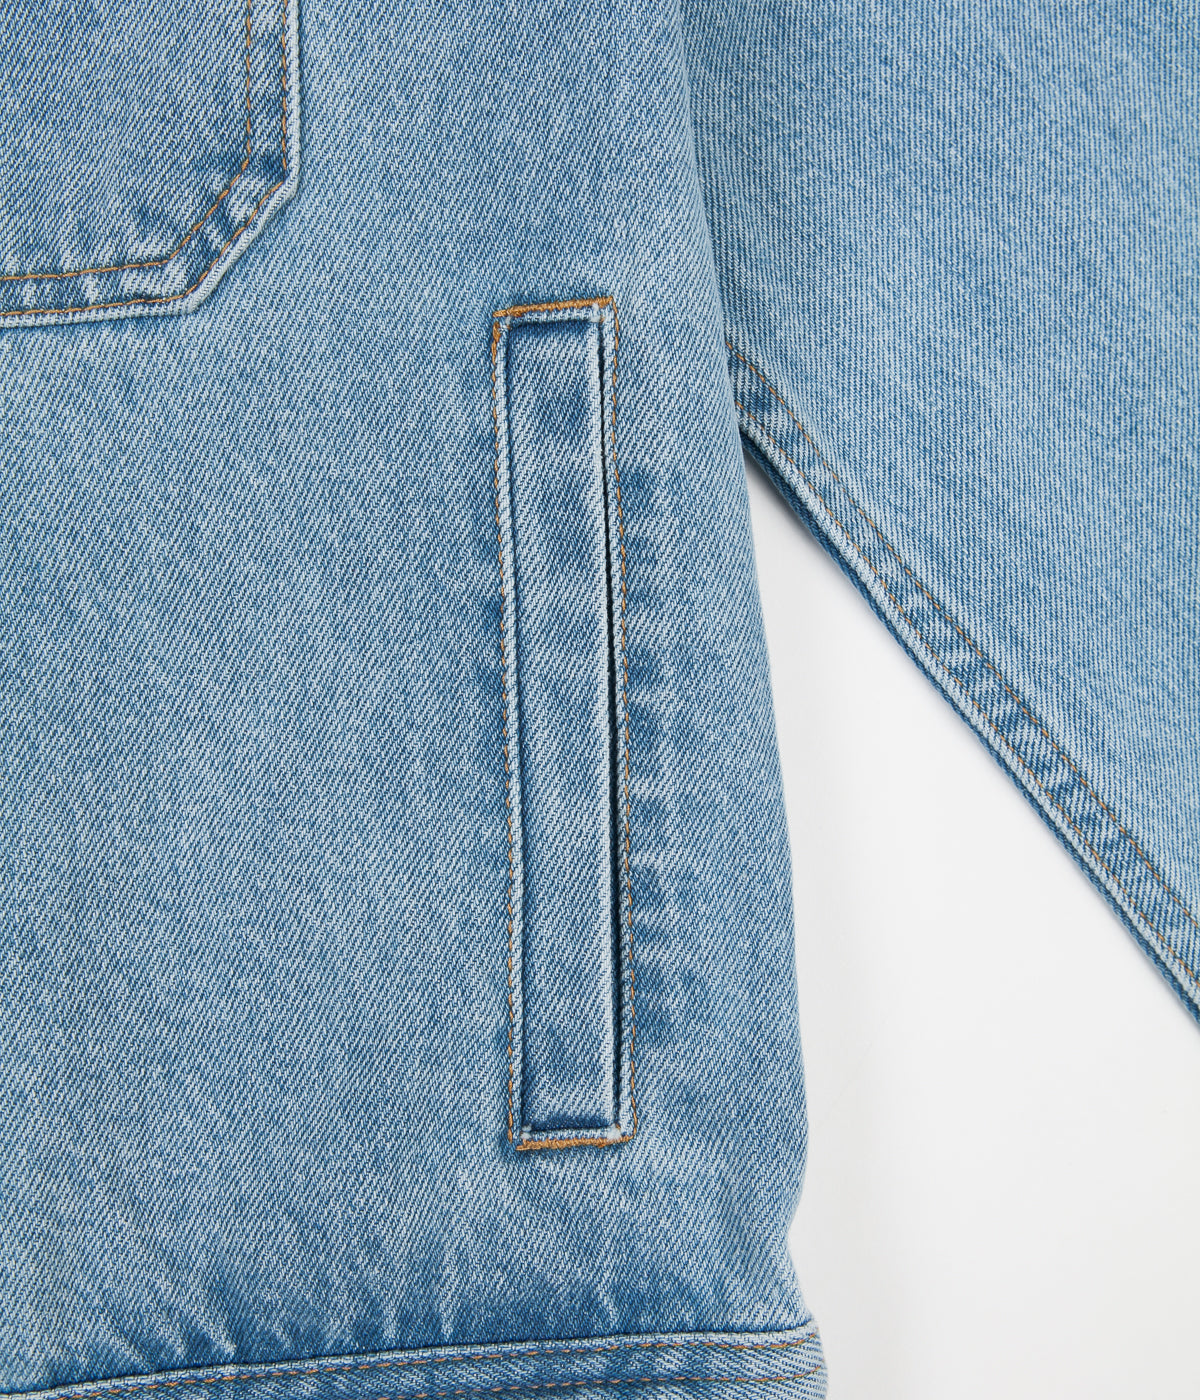 Stussy Denim Garage Jacket - Light Blue